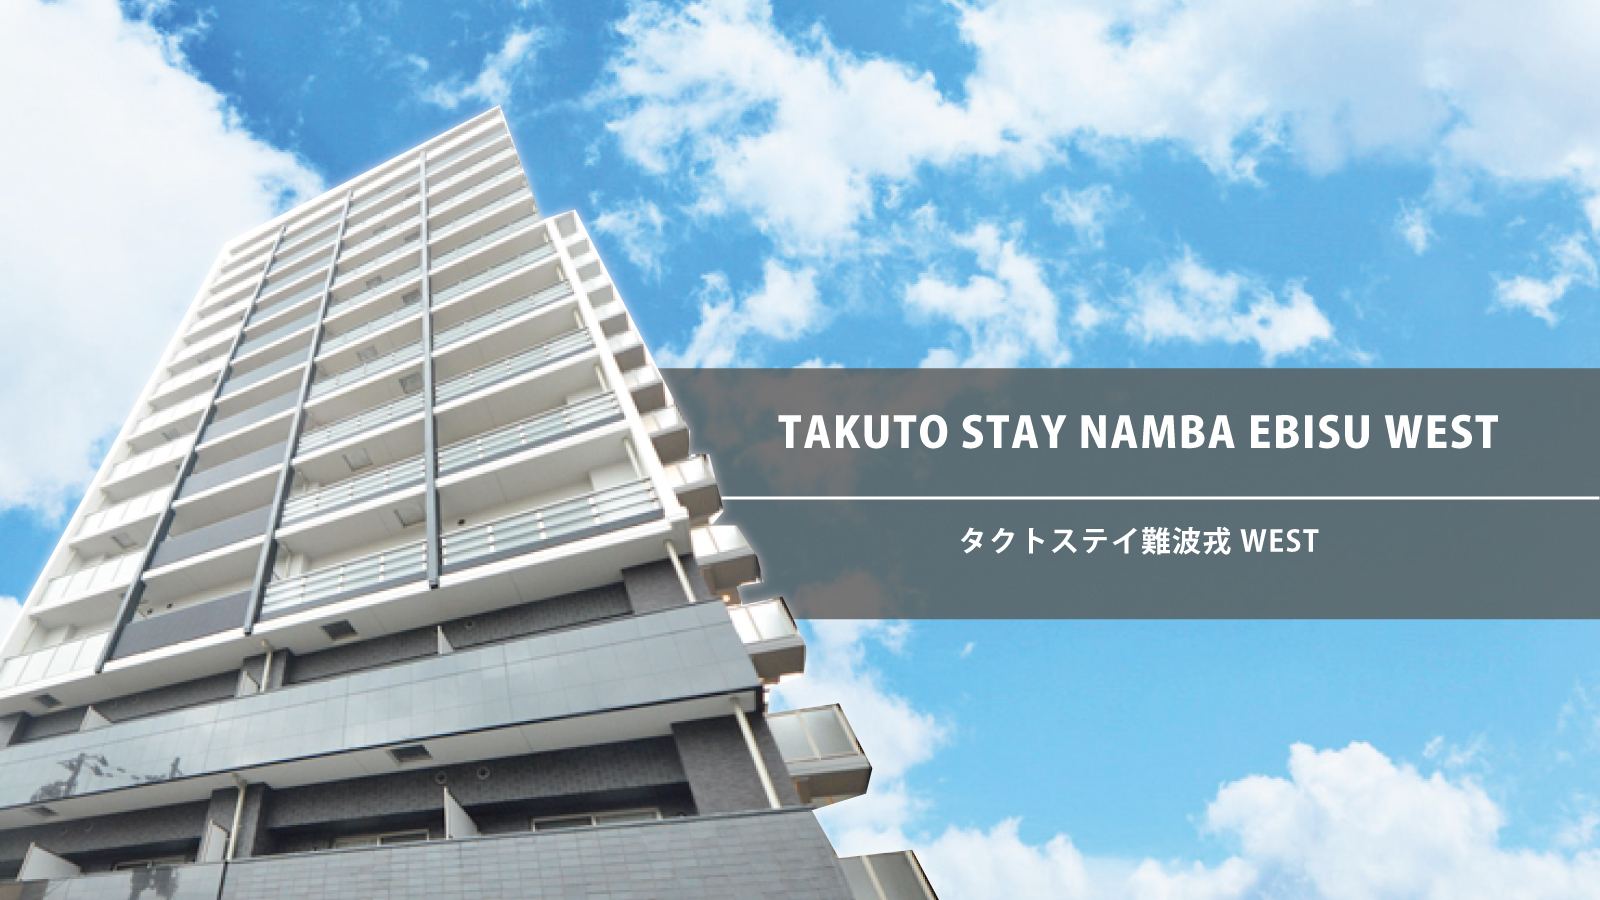 TAKUTO STAY NAMBAEBISU WEST 外観